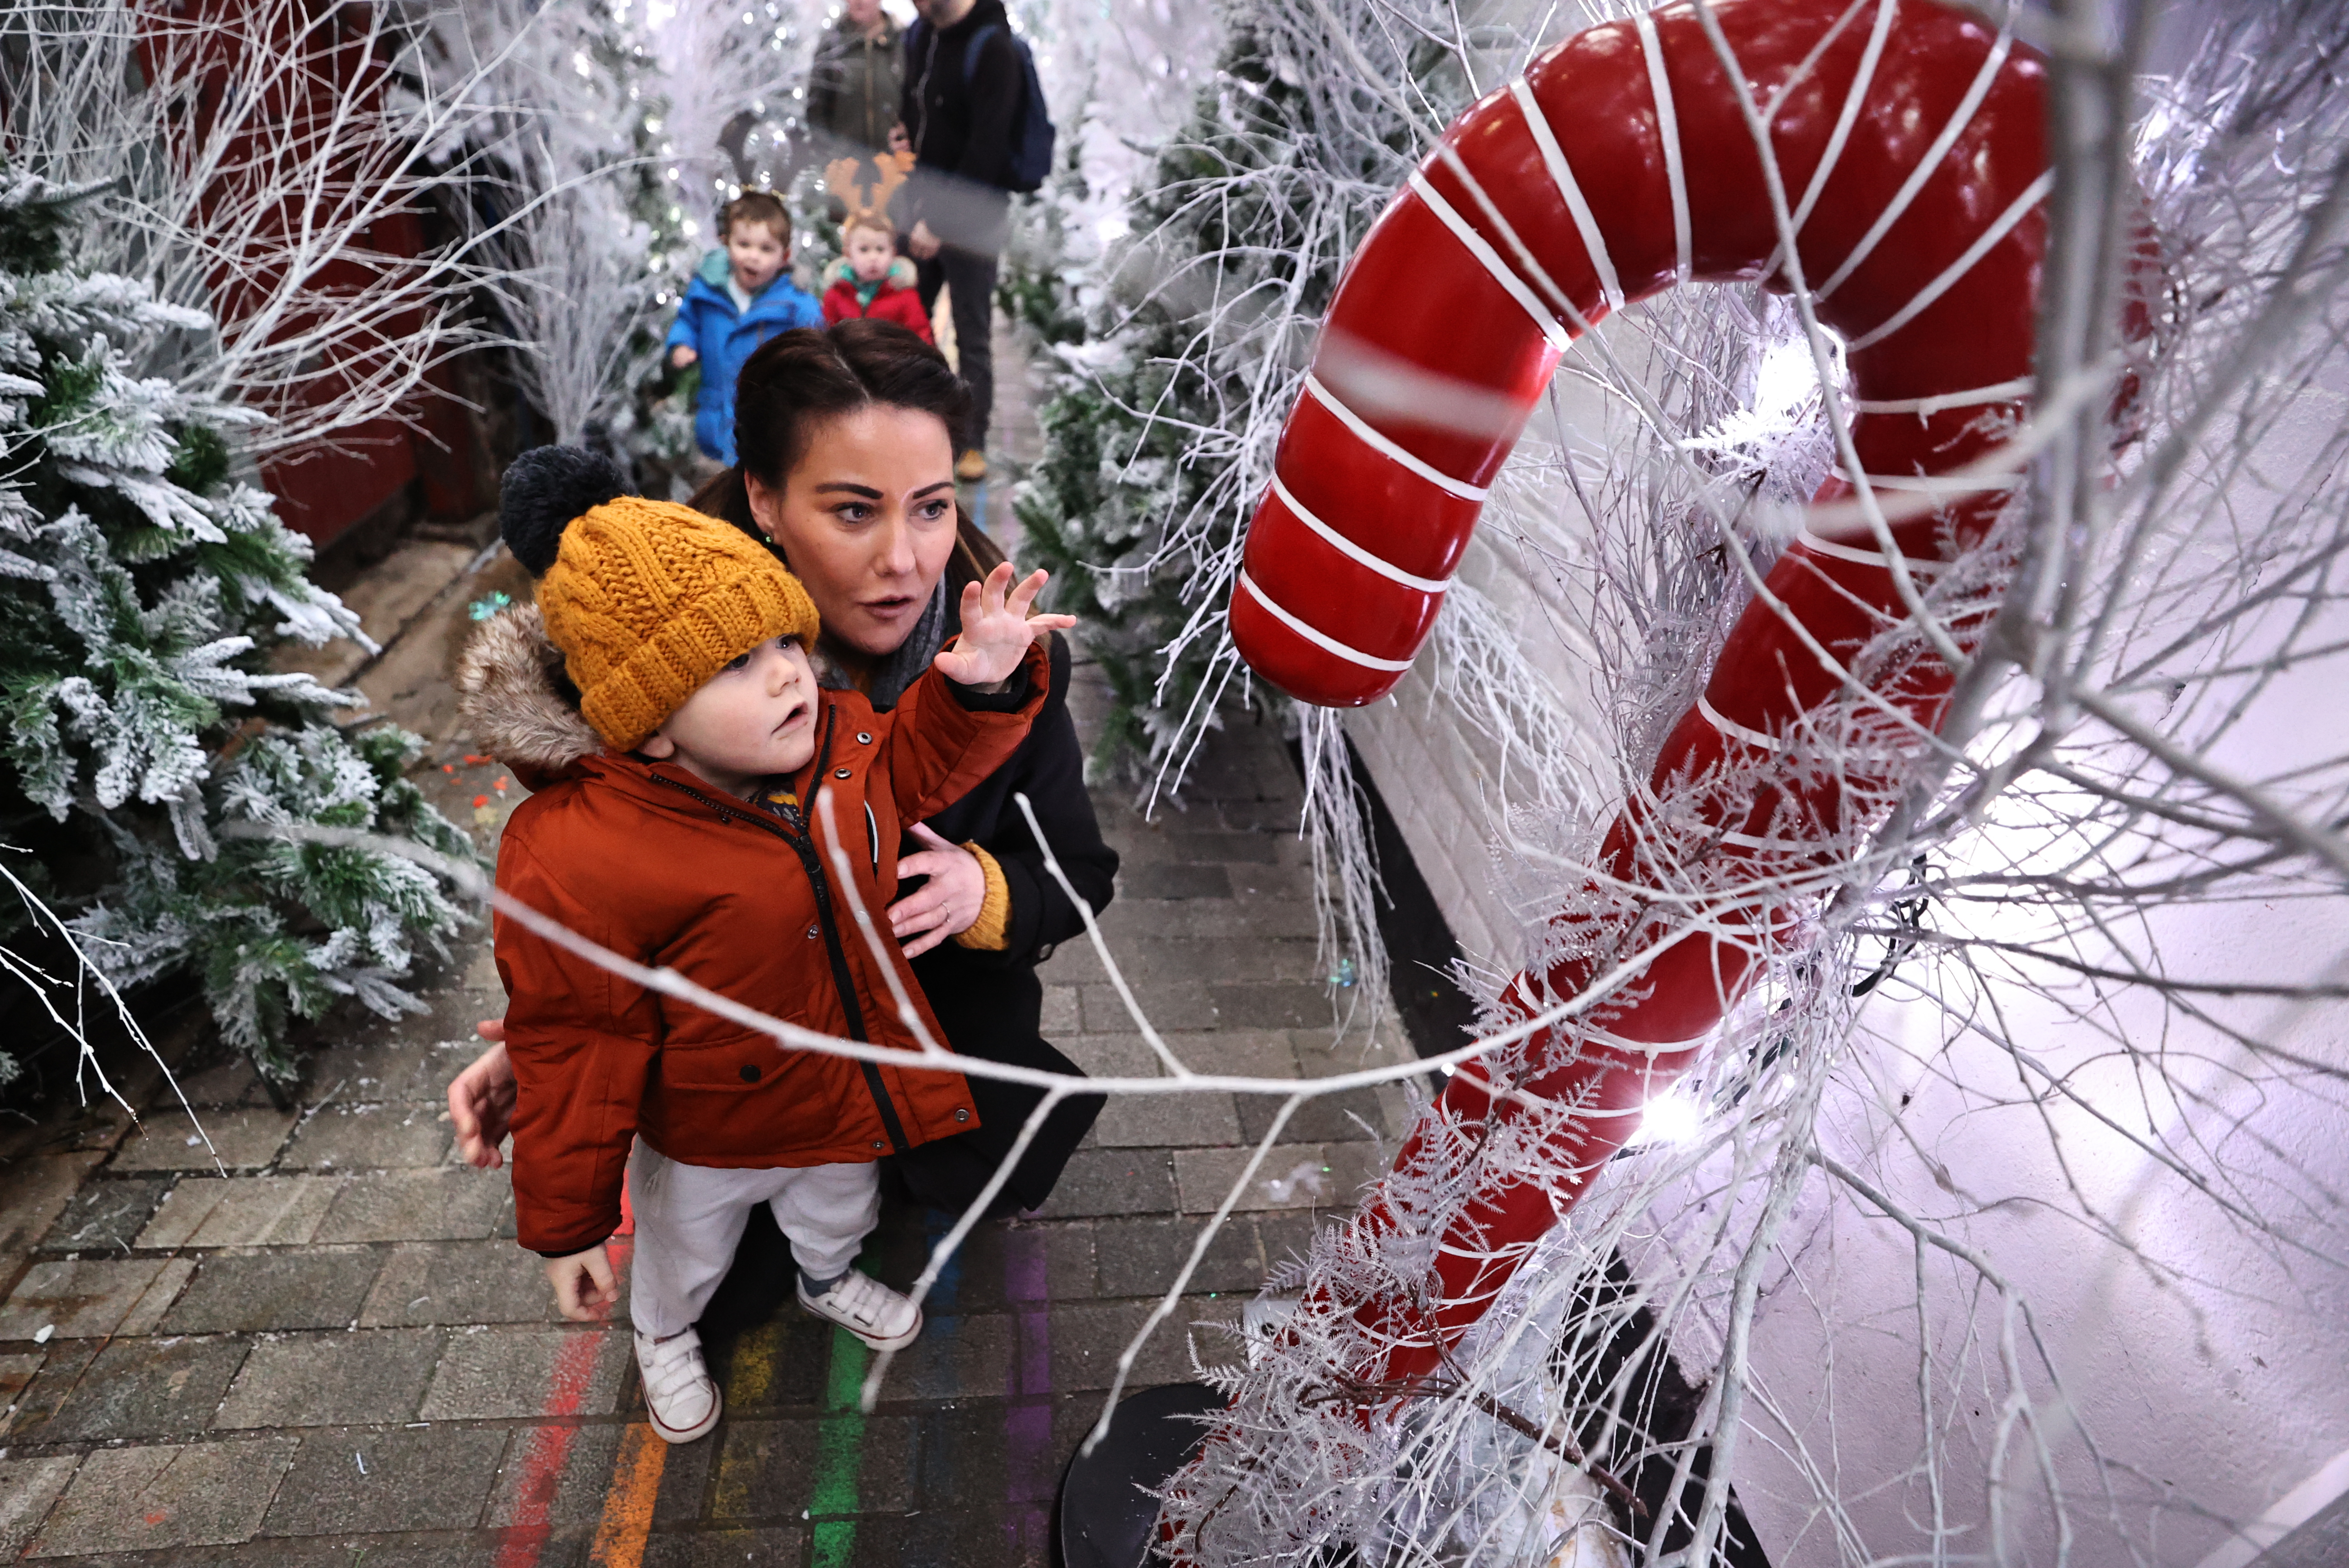 Two year old Antoin McCready walking through The Jailhouse Christmas Magic on Joy's Entry in Belfast with his mother Patricia Williamson. (Photo by Liam McBurney/PA Images via Getty Images)